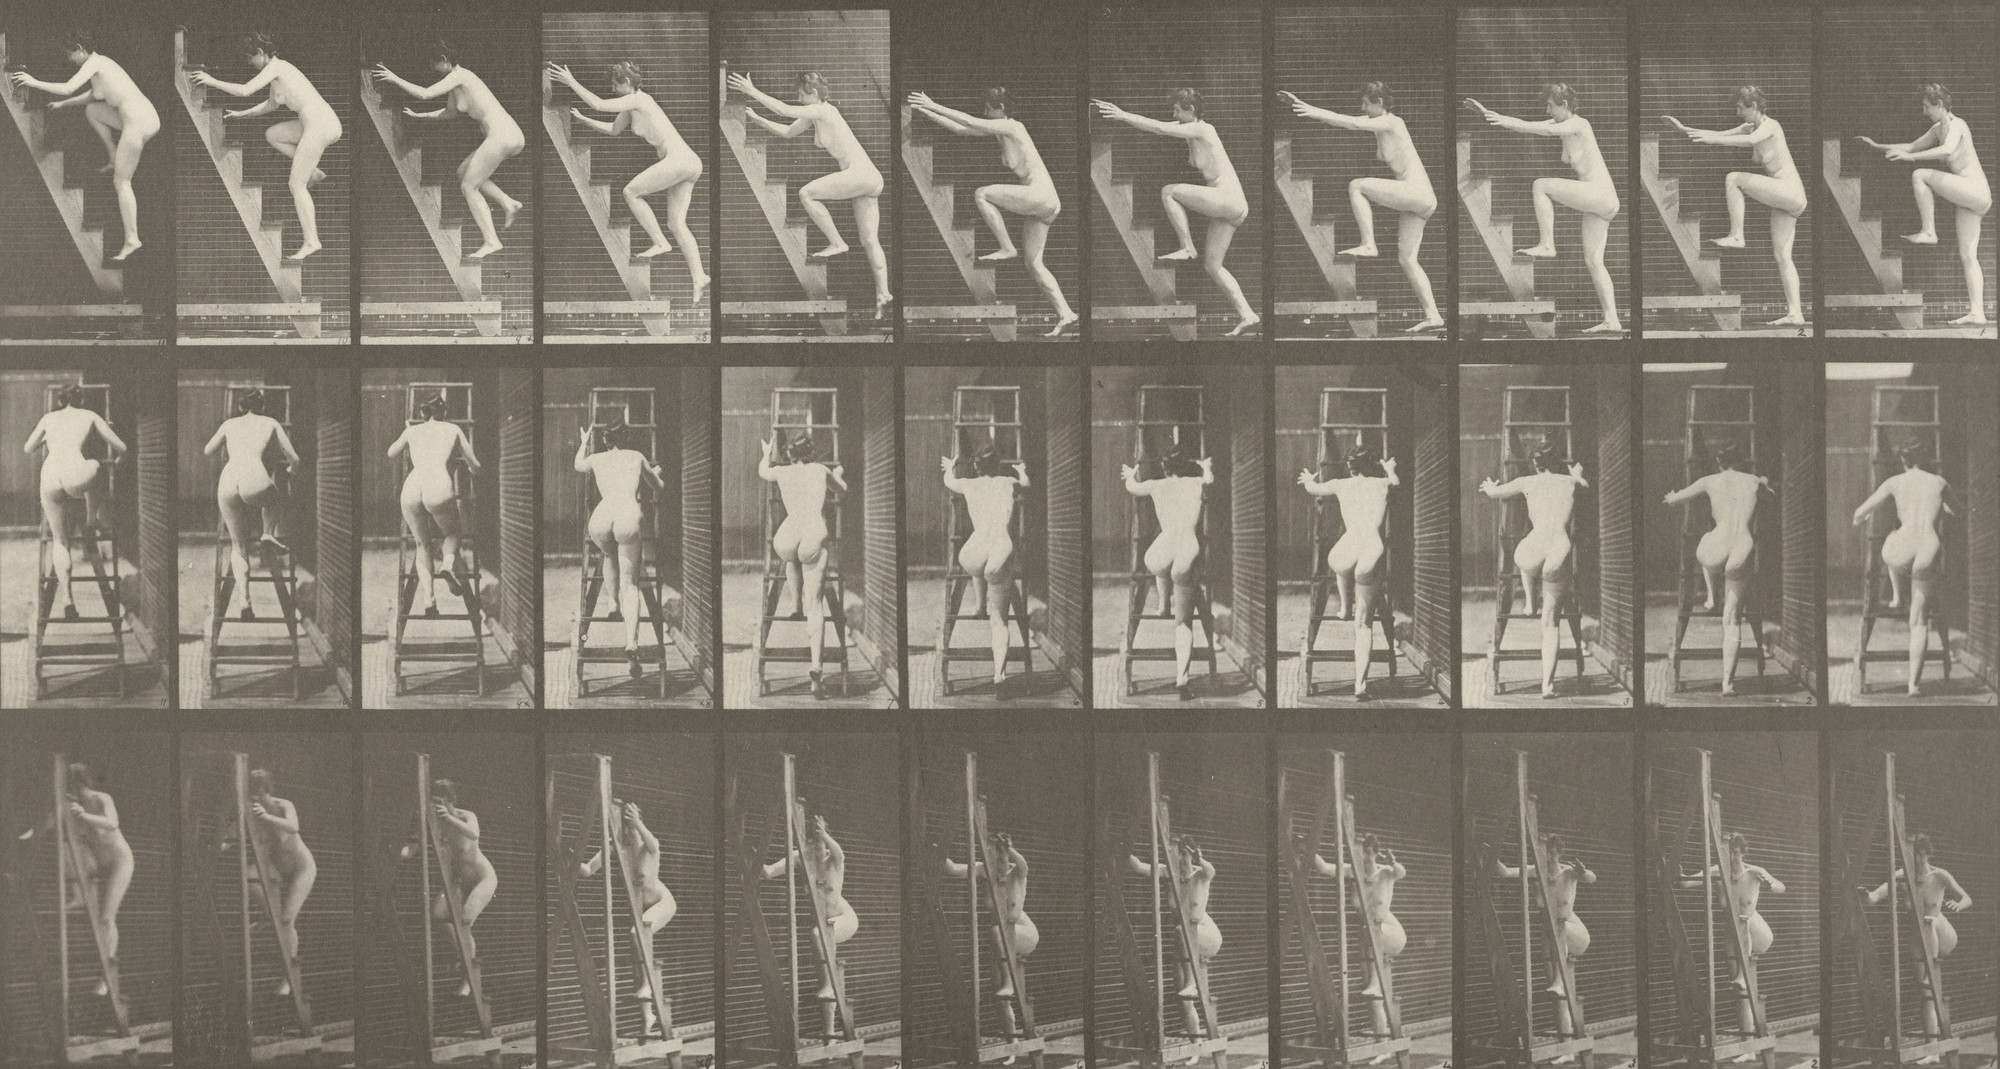 Eadweard J. Muybridge. Woman Ascending a Stepladder Two Steps at a Time: Plate 110 from Animal Locomotion (1887). 1884-86